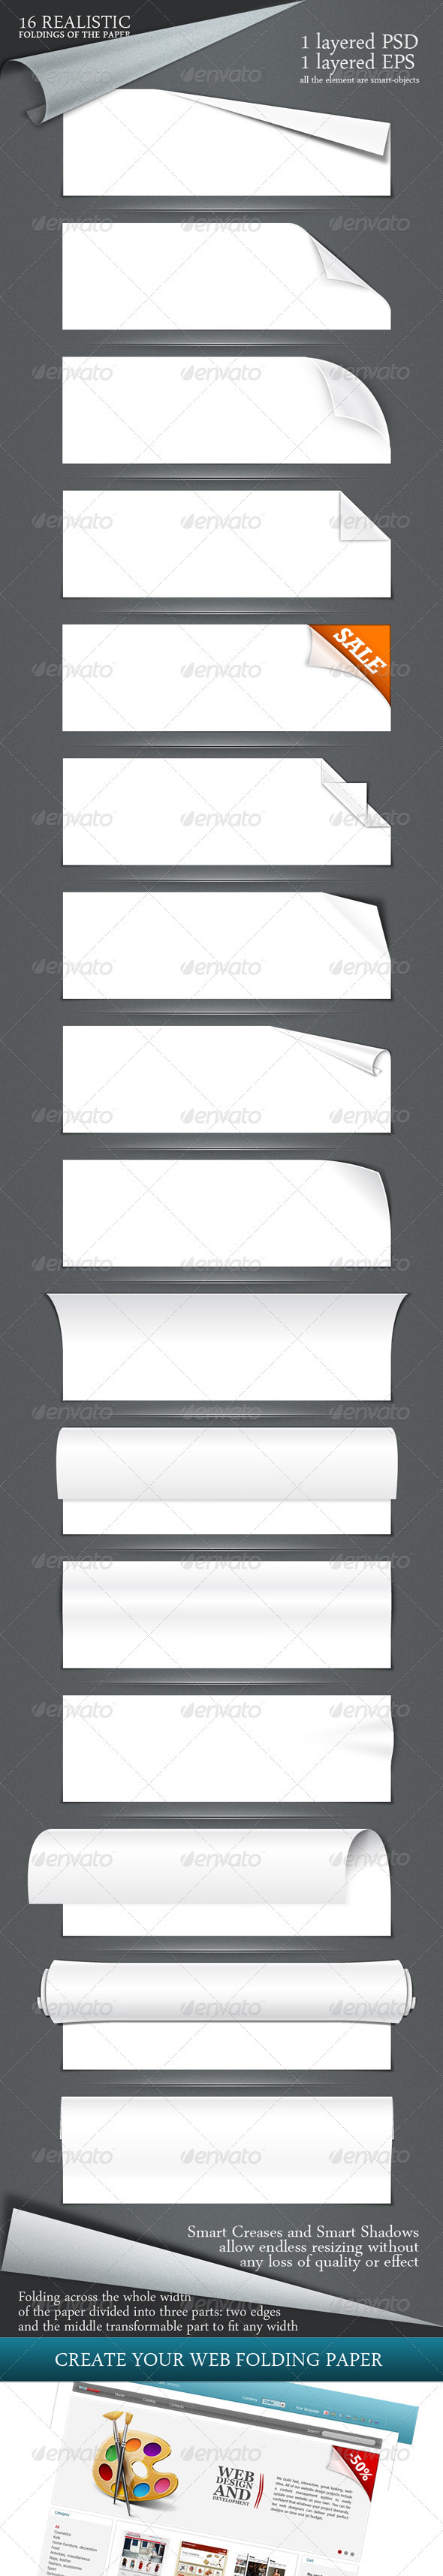 GraphicRiver 16 realistic folding of the paper PSD & EPS 481445